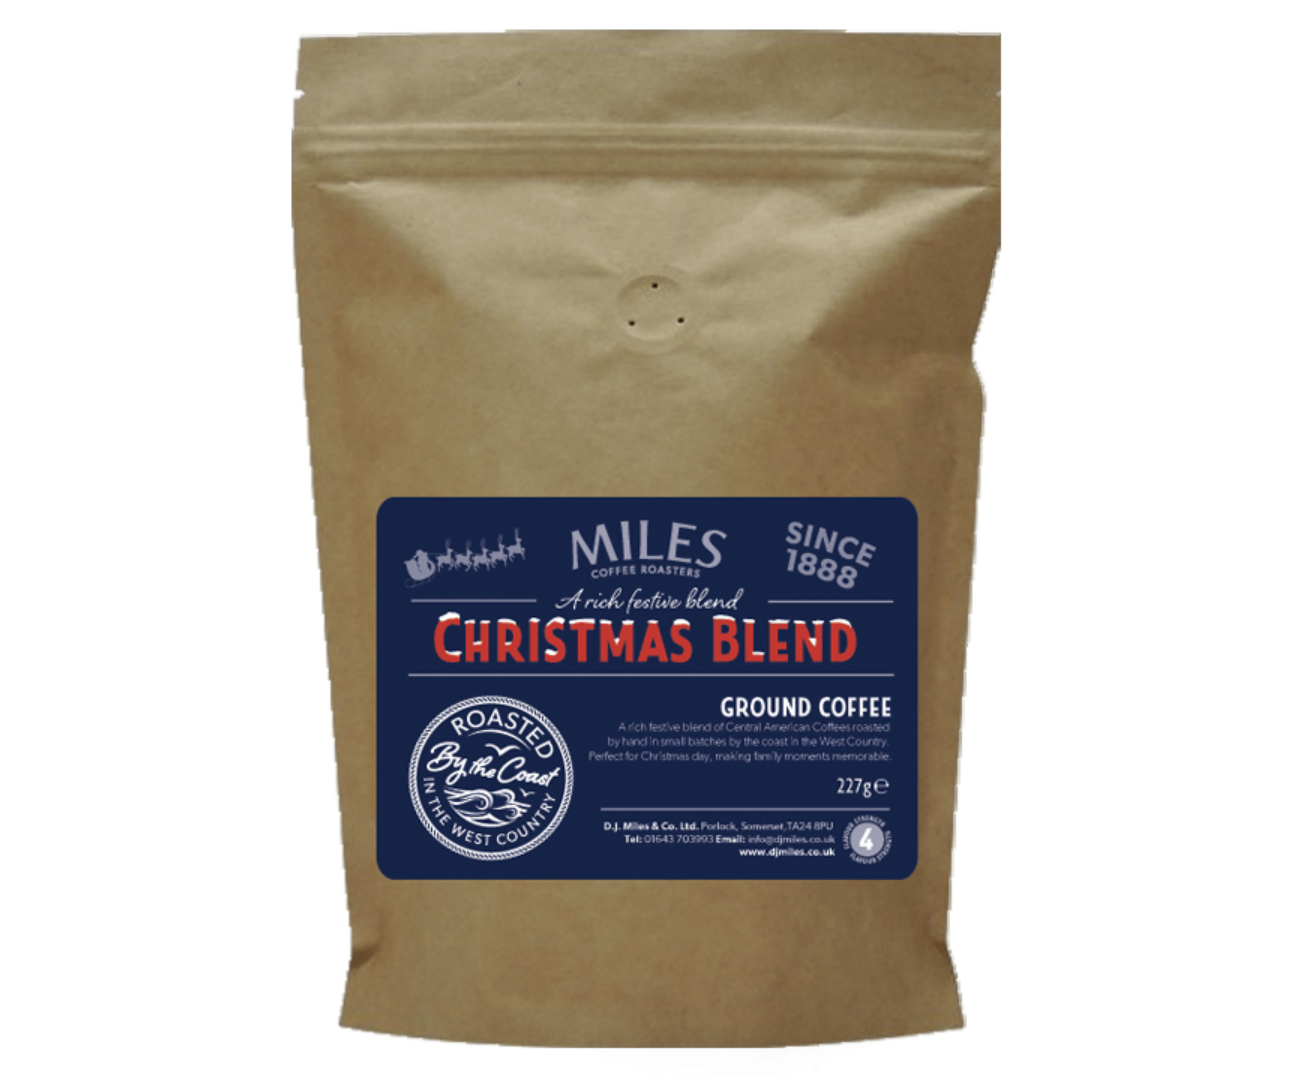 A rich, festive blend of coffee beans, our Christmas Blend